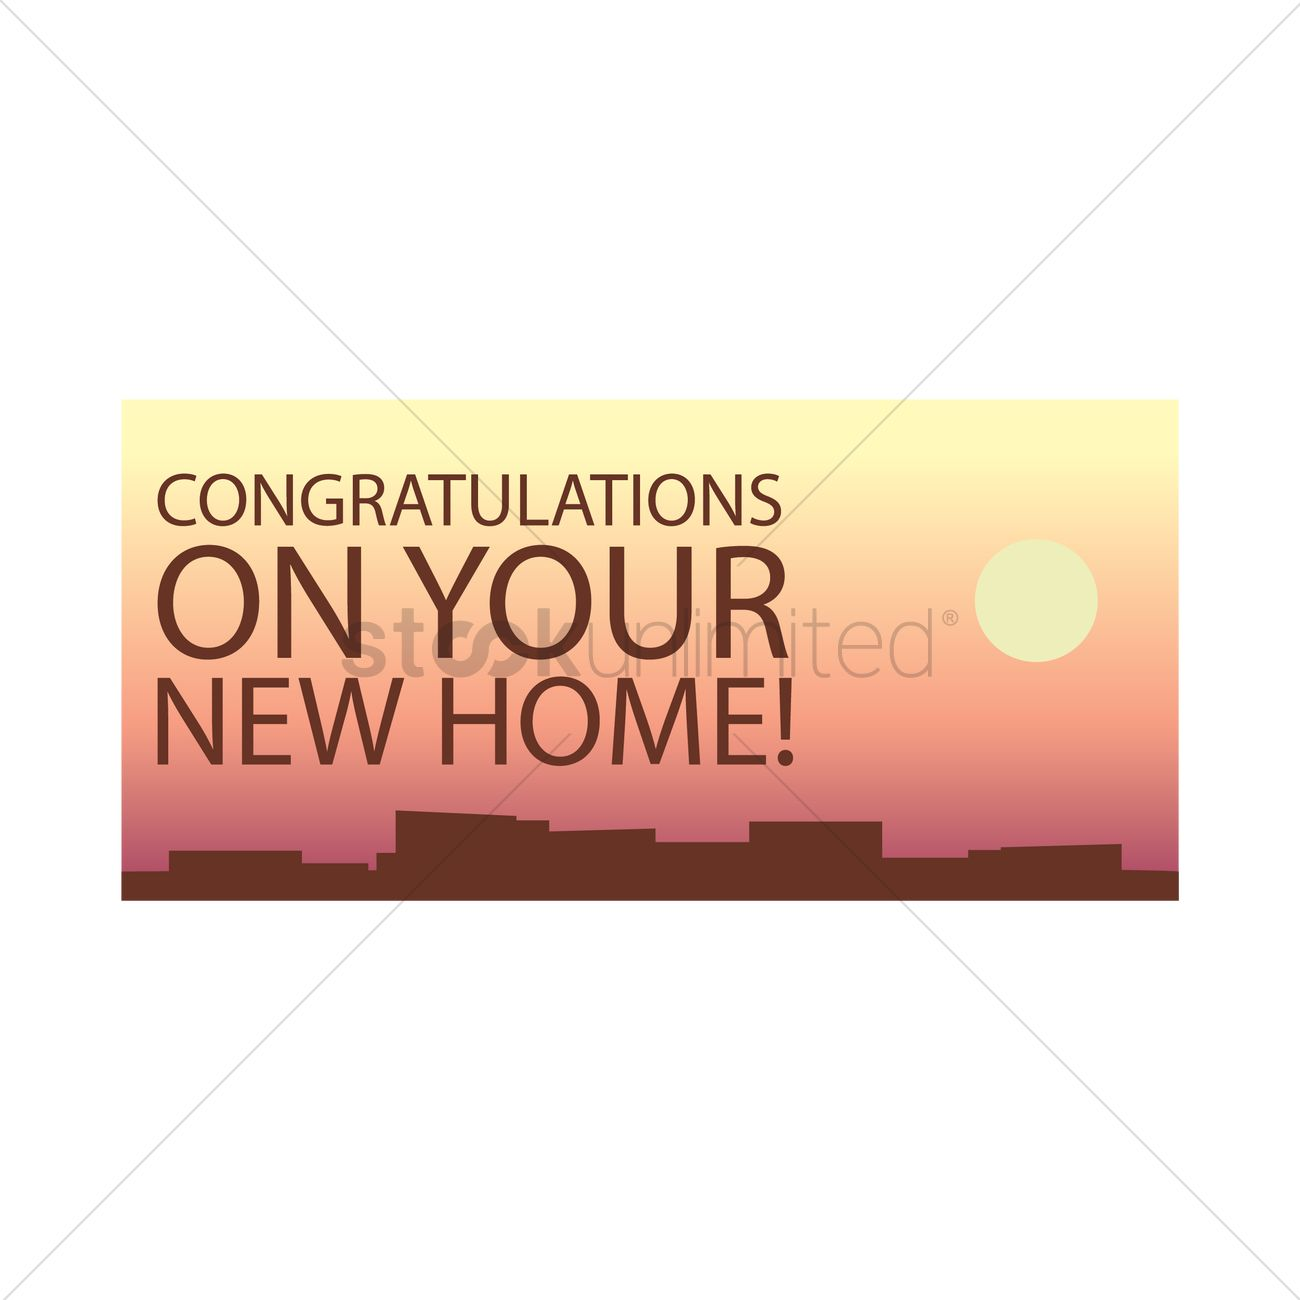 Congratulatory message on your new home Vector Image